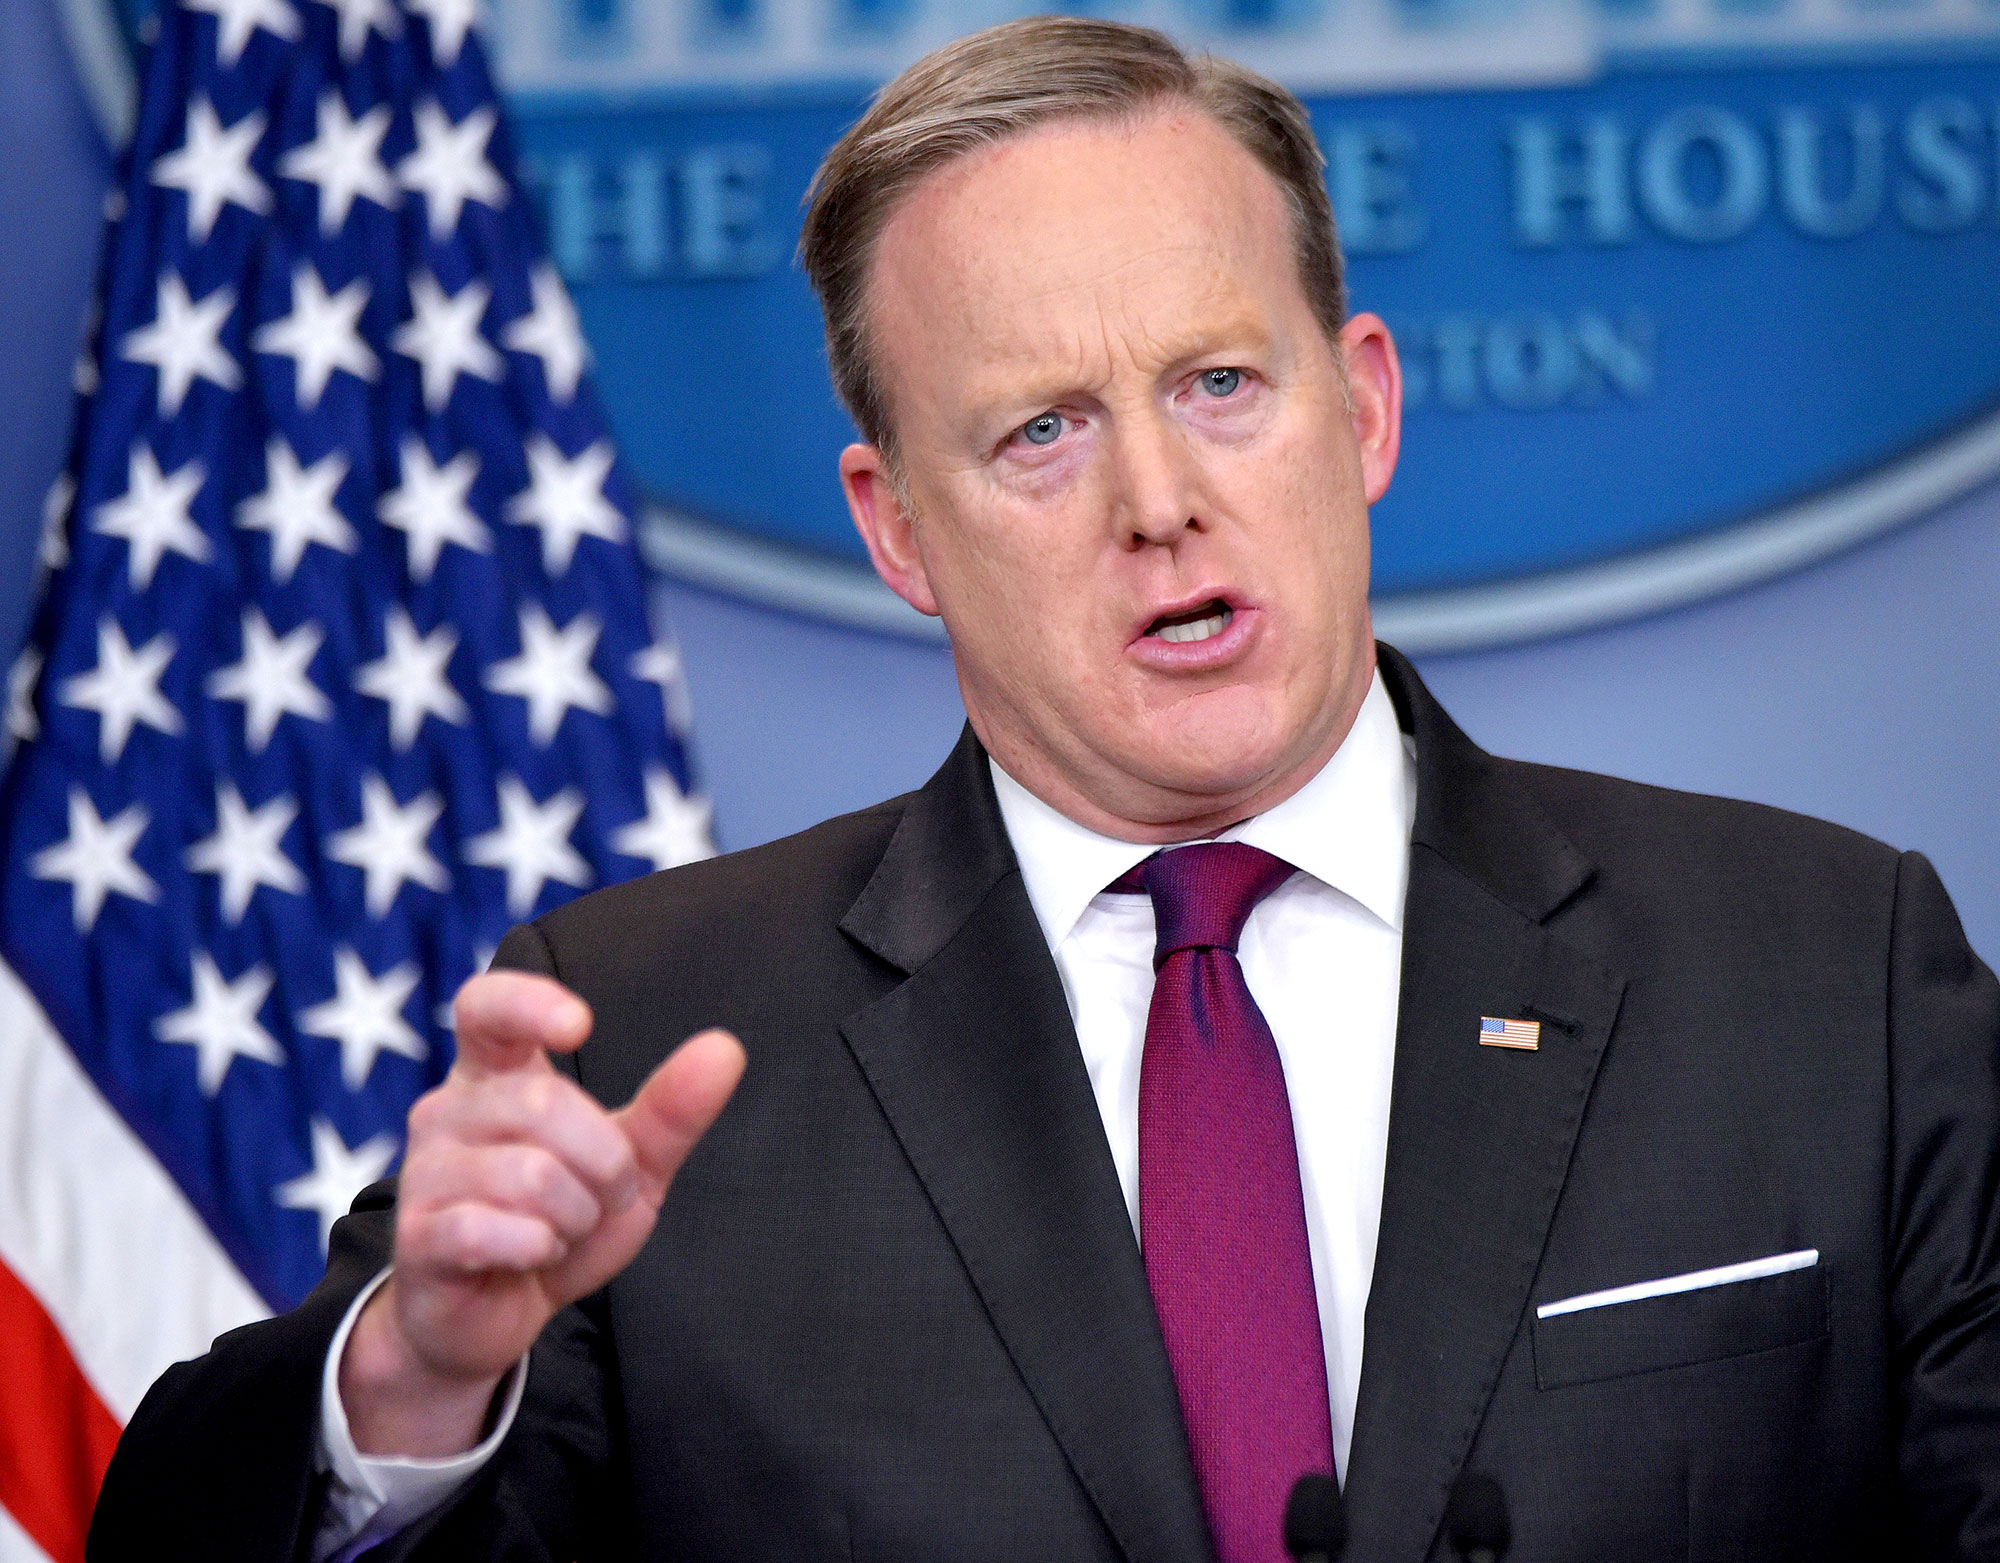 White House Press Secretary Sean Spicer speaks during the daily briefing in the Brady Briefing Room of the White House on February 23, 2017 in the Washington, DC.